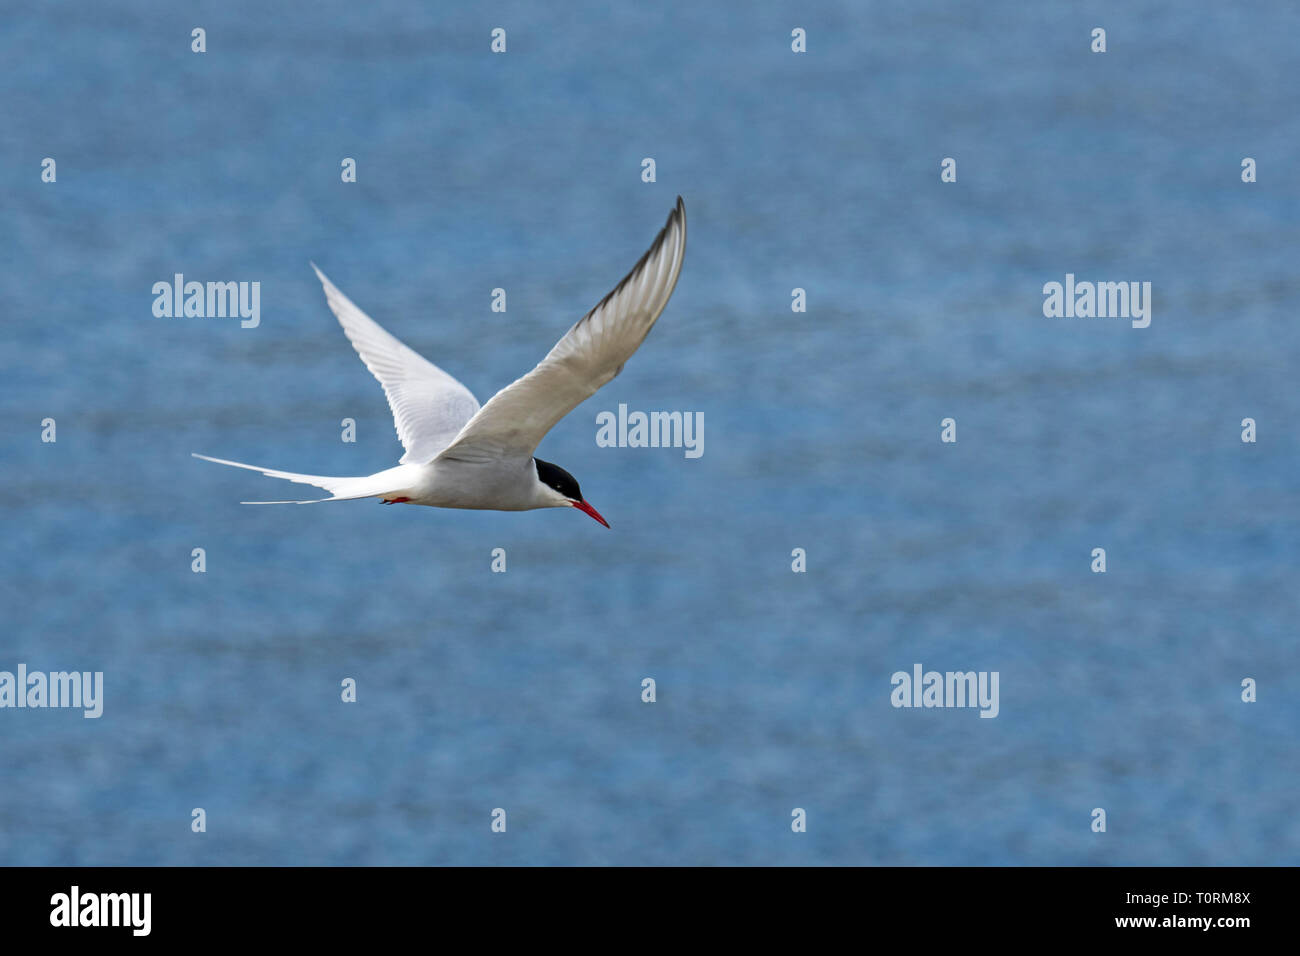 Arctic tern (Sterna paradisaea) flying over sea water / Atlantic Ocean - Stock Image